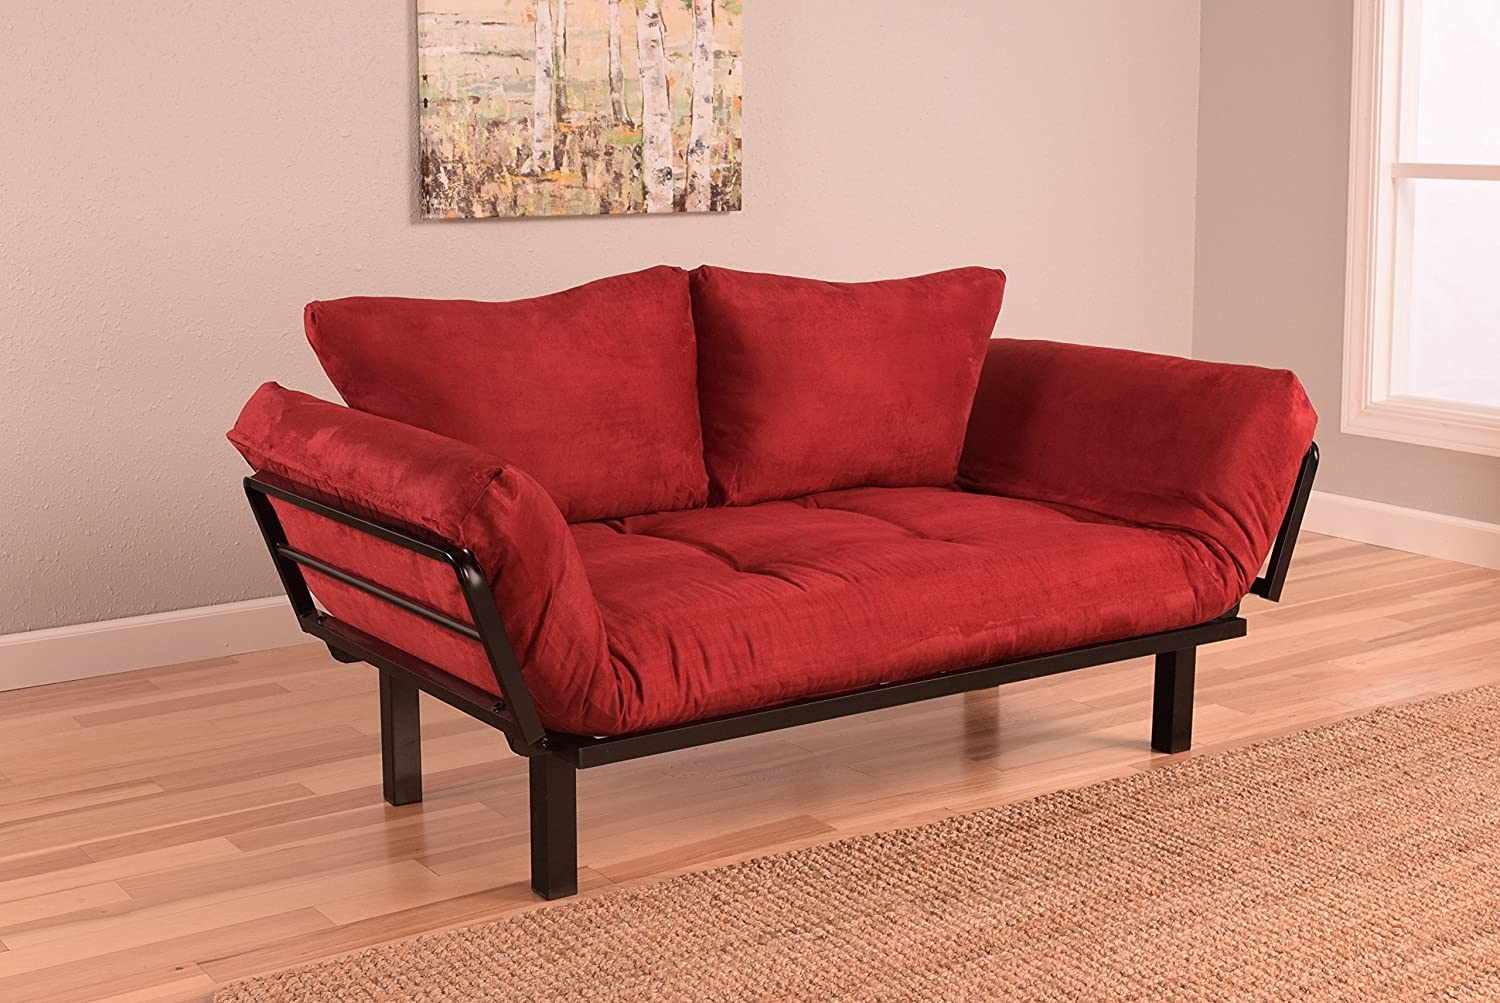 Amazon.com: Best Futon Lounger Sit Lounge Sleep Smaller Size Furniture Is  Perfect For College Dorm Bedroom Studio Apartment Guest Room Covered Patio  Porch .